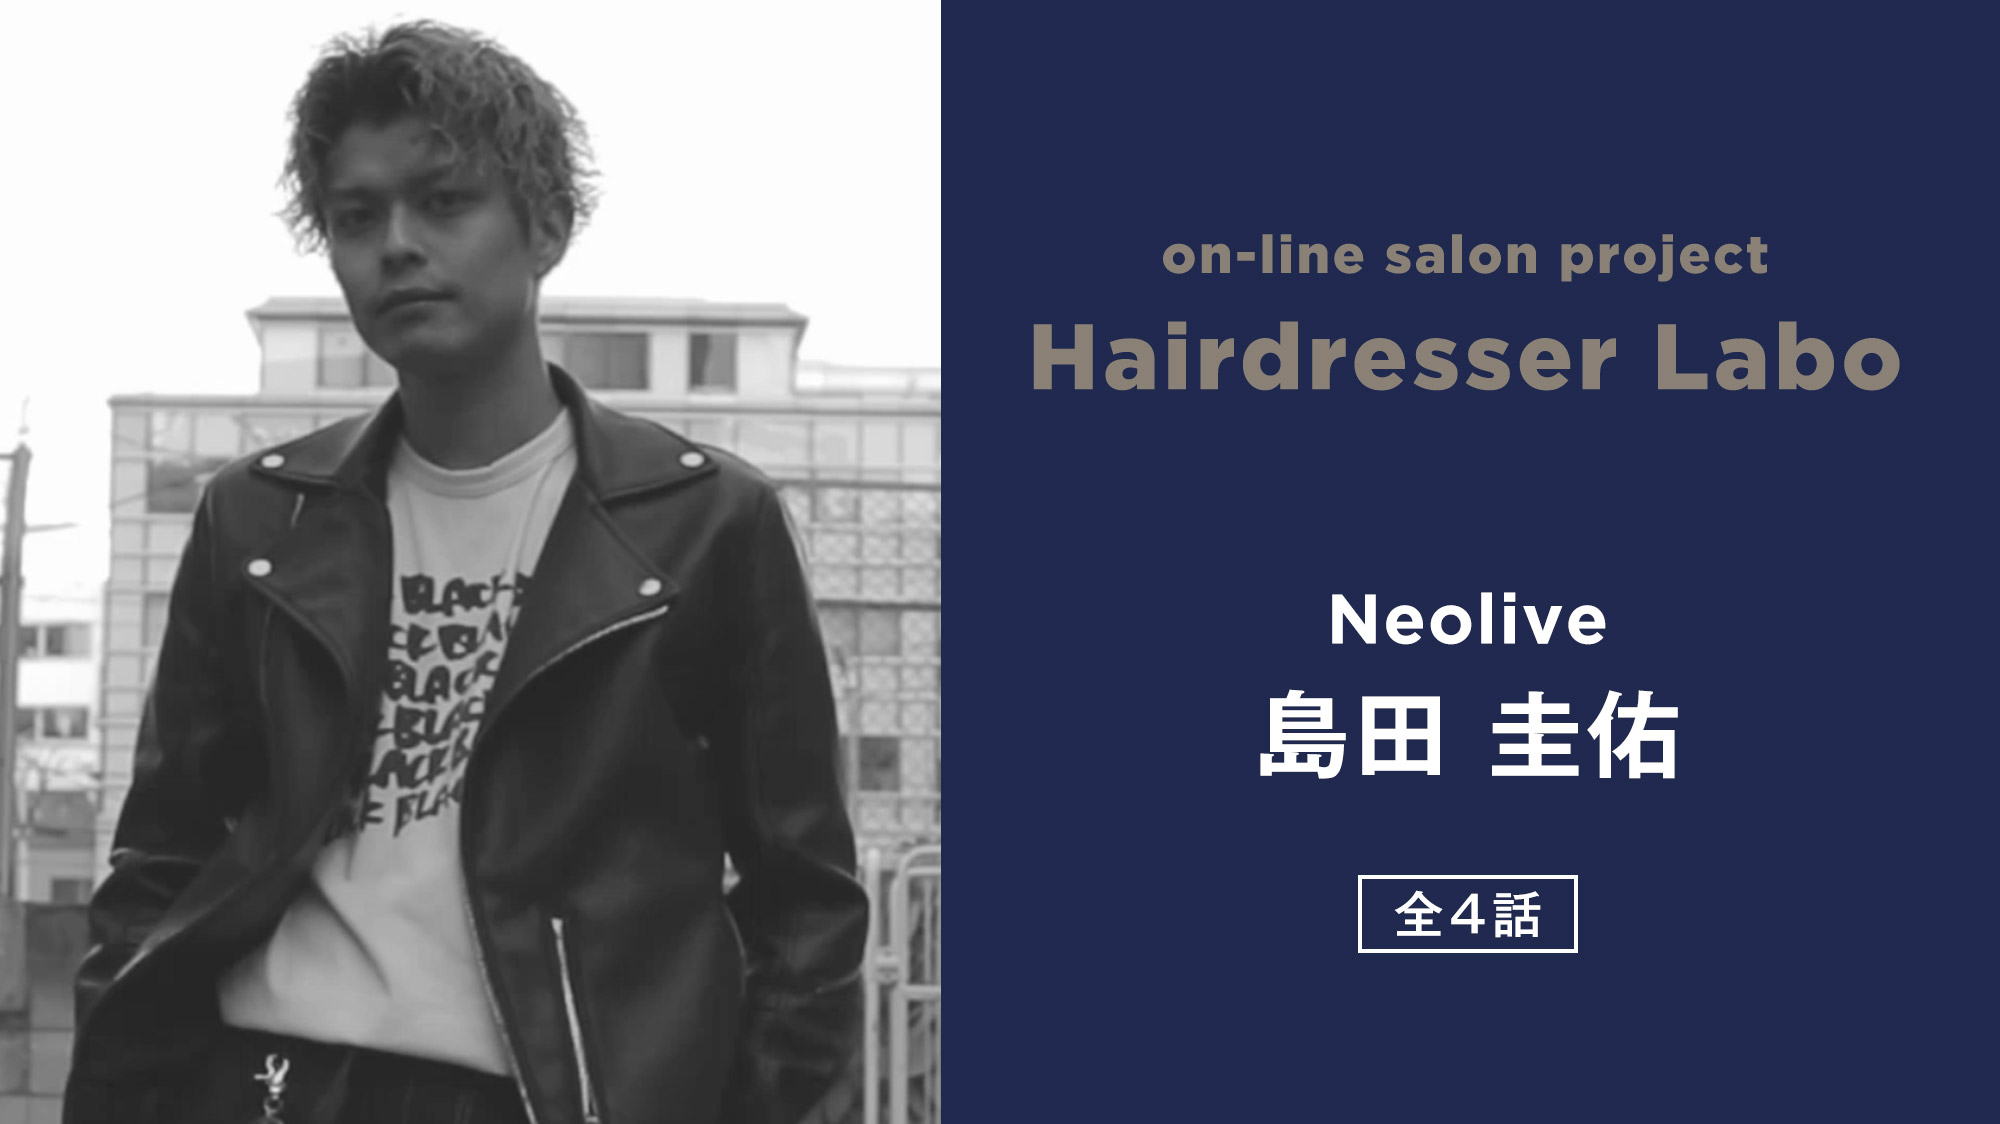 on-line salon project Hairdresser Labo『島田 圭佑』 全4話